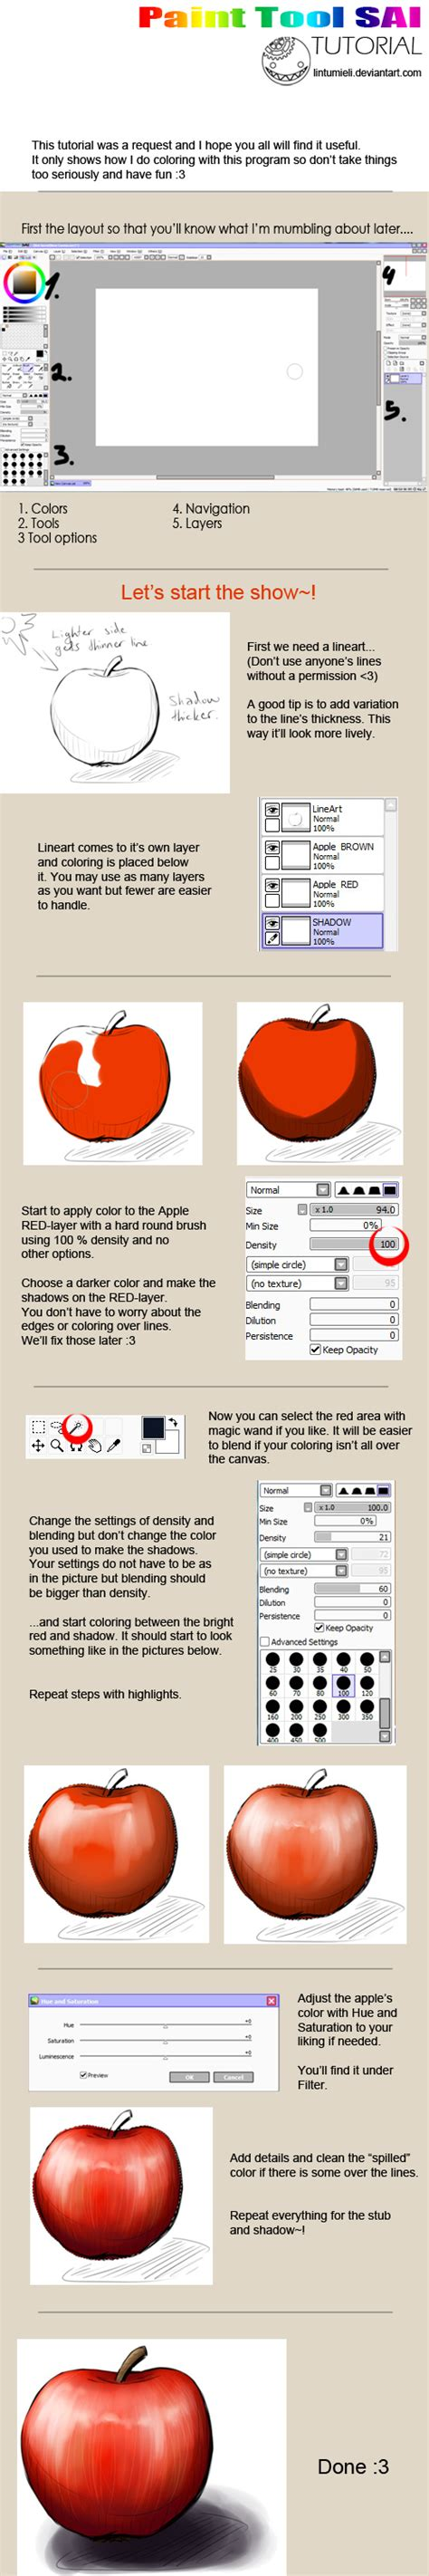 paint tool sai tutorial paint tool sai coloring tutorial by lintumieli on deviantart